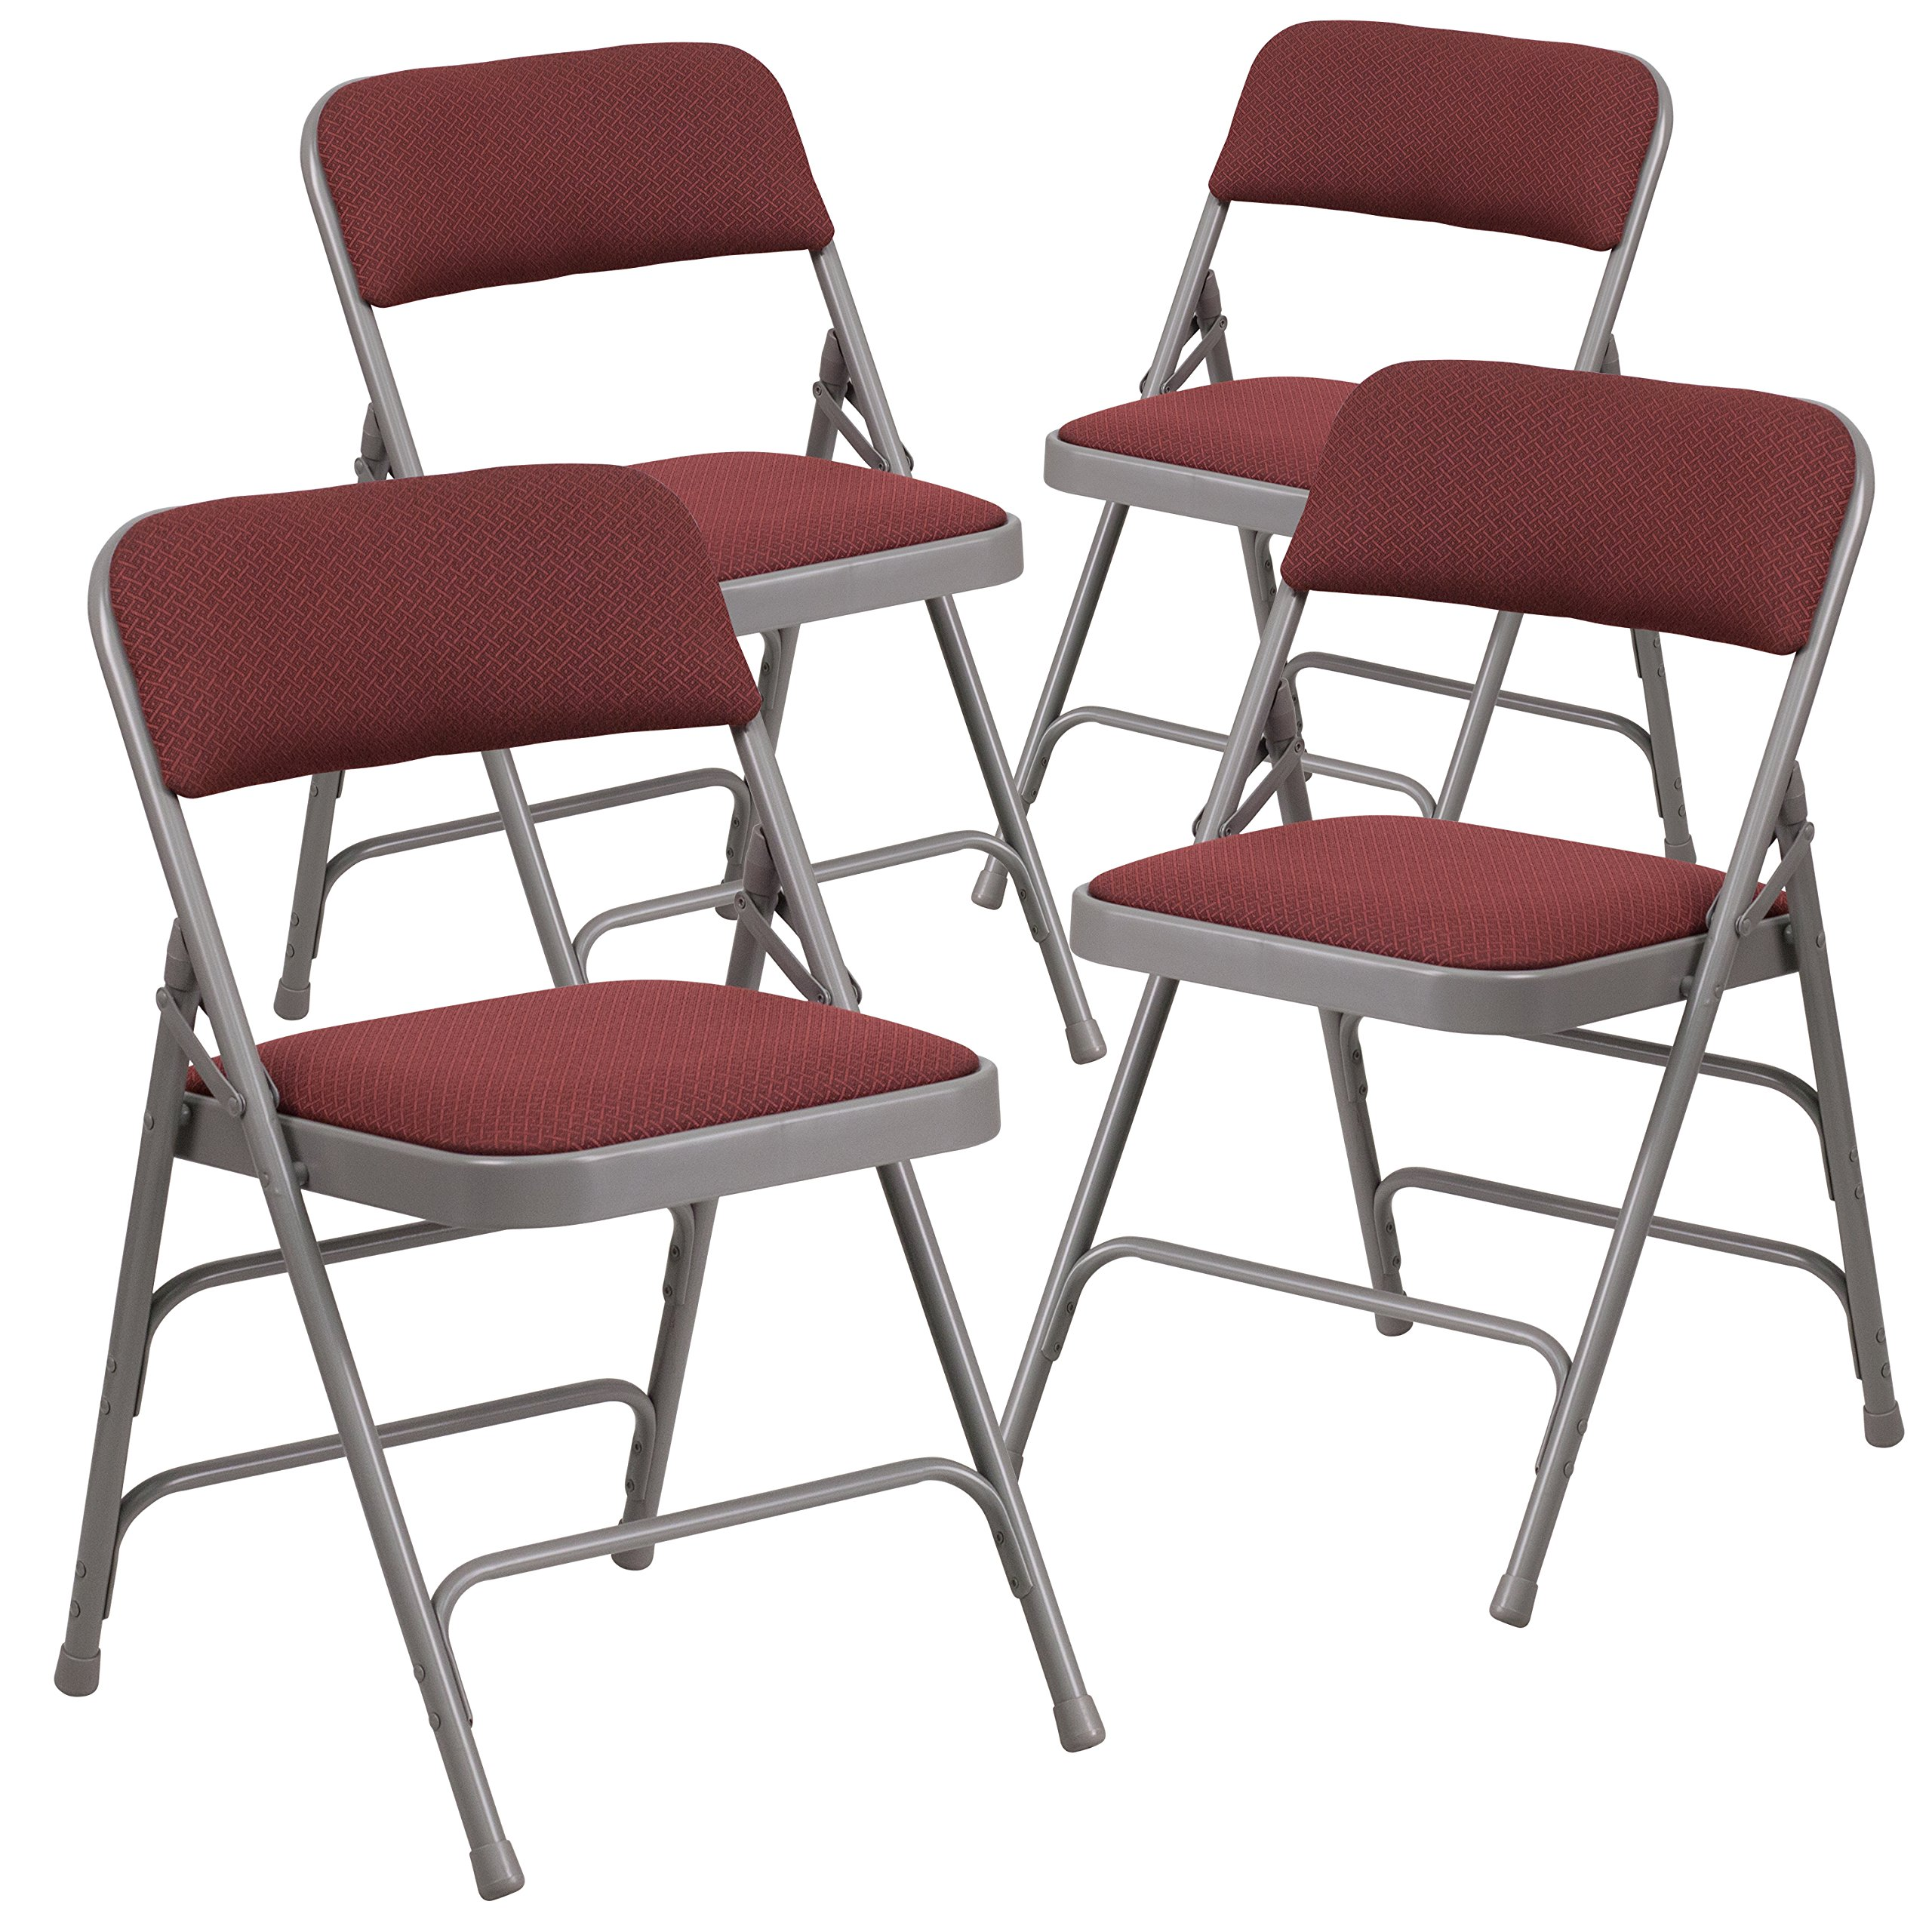 Flash Furniture 4 Pk. HERCULES Series Curved Triple Braced & Double Hinged Burgundy Patterned Fabric Metal Folding Chair